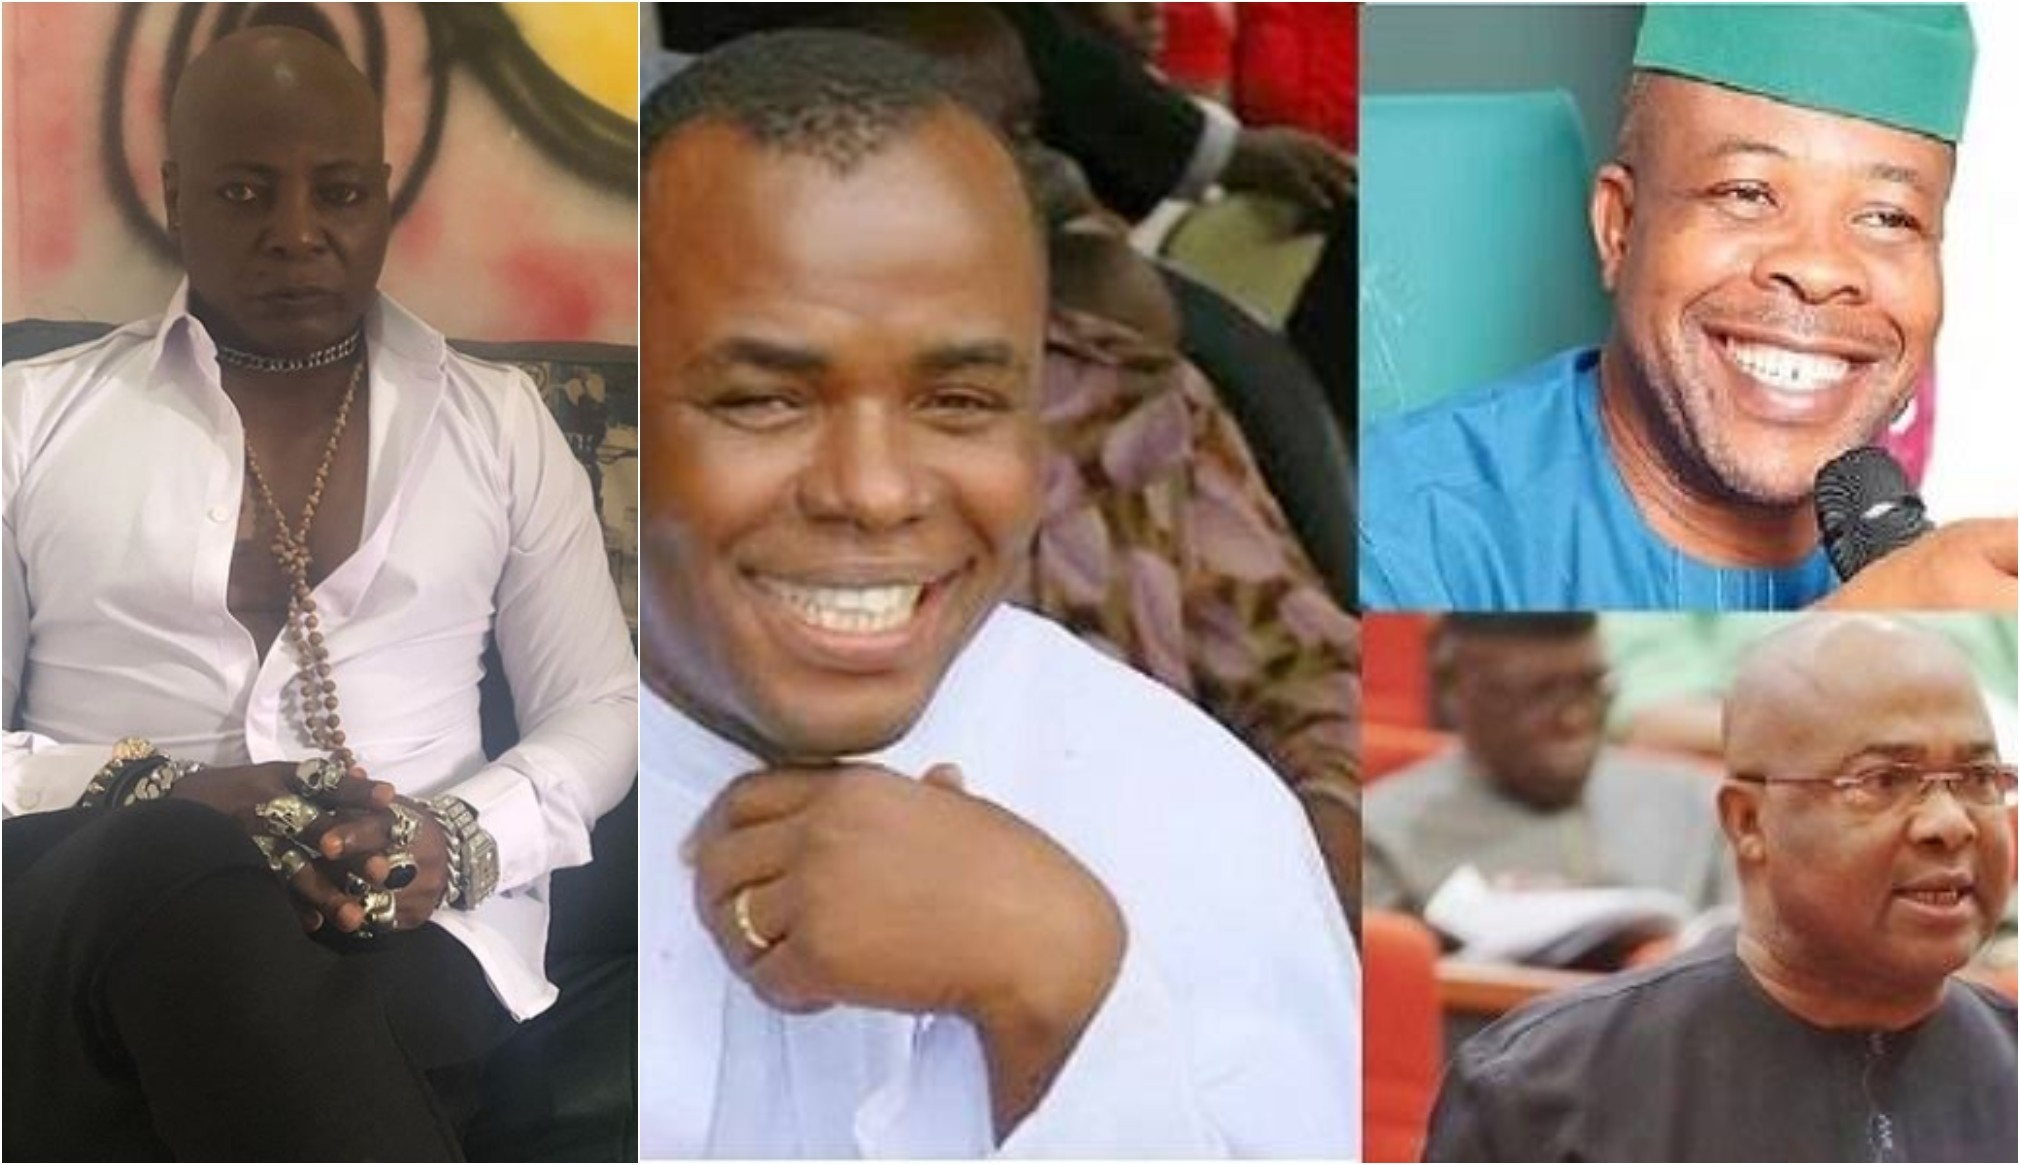 Charly Boy reacts to Rev. Mbaka's 'prophecy' about Hope Uzodinma-Prophecies by Nigerian men of God are always suspicious